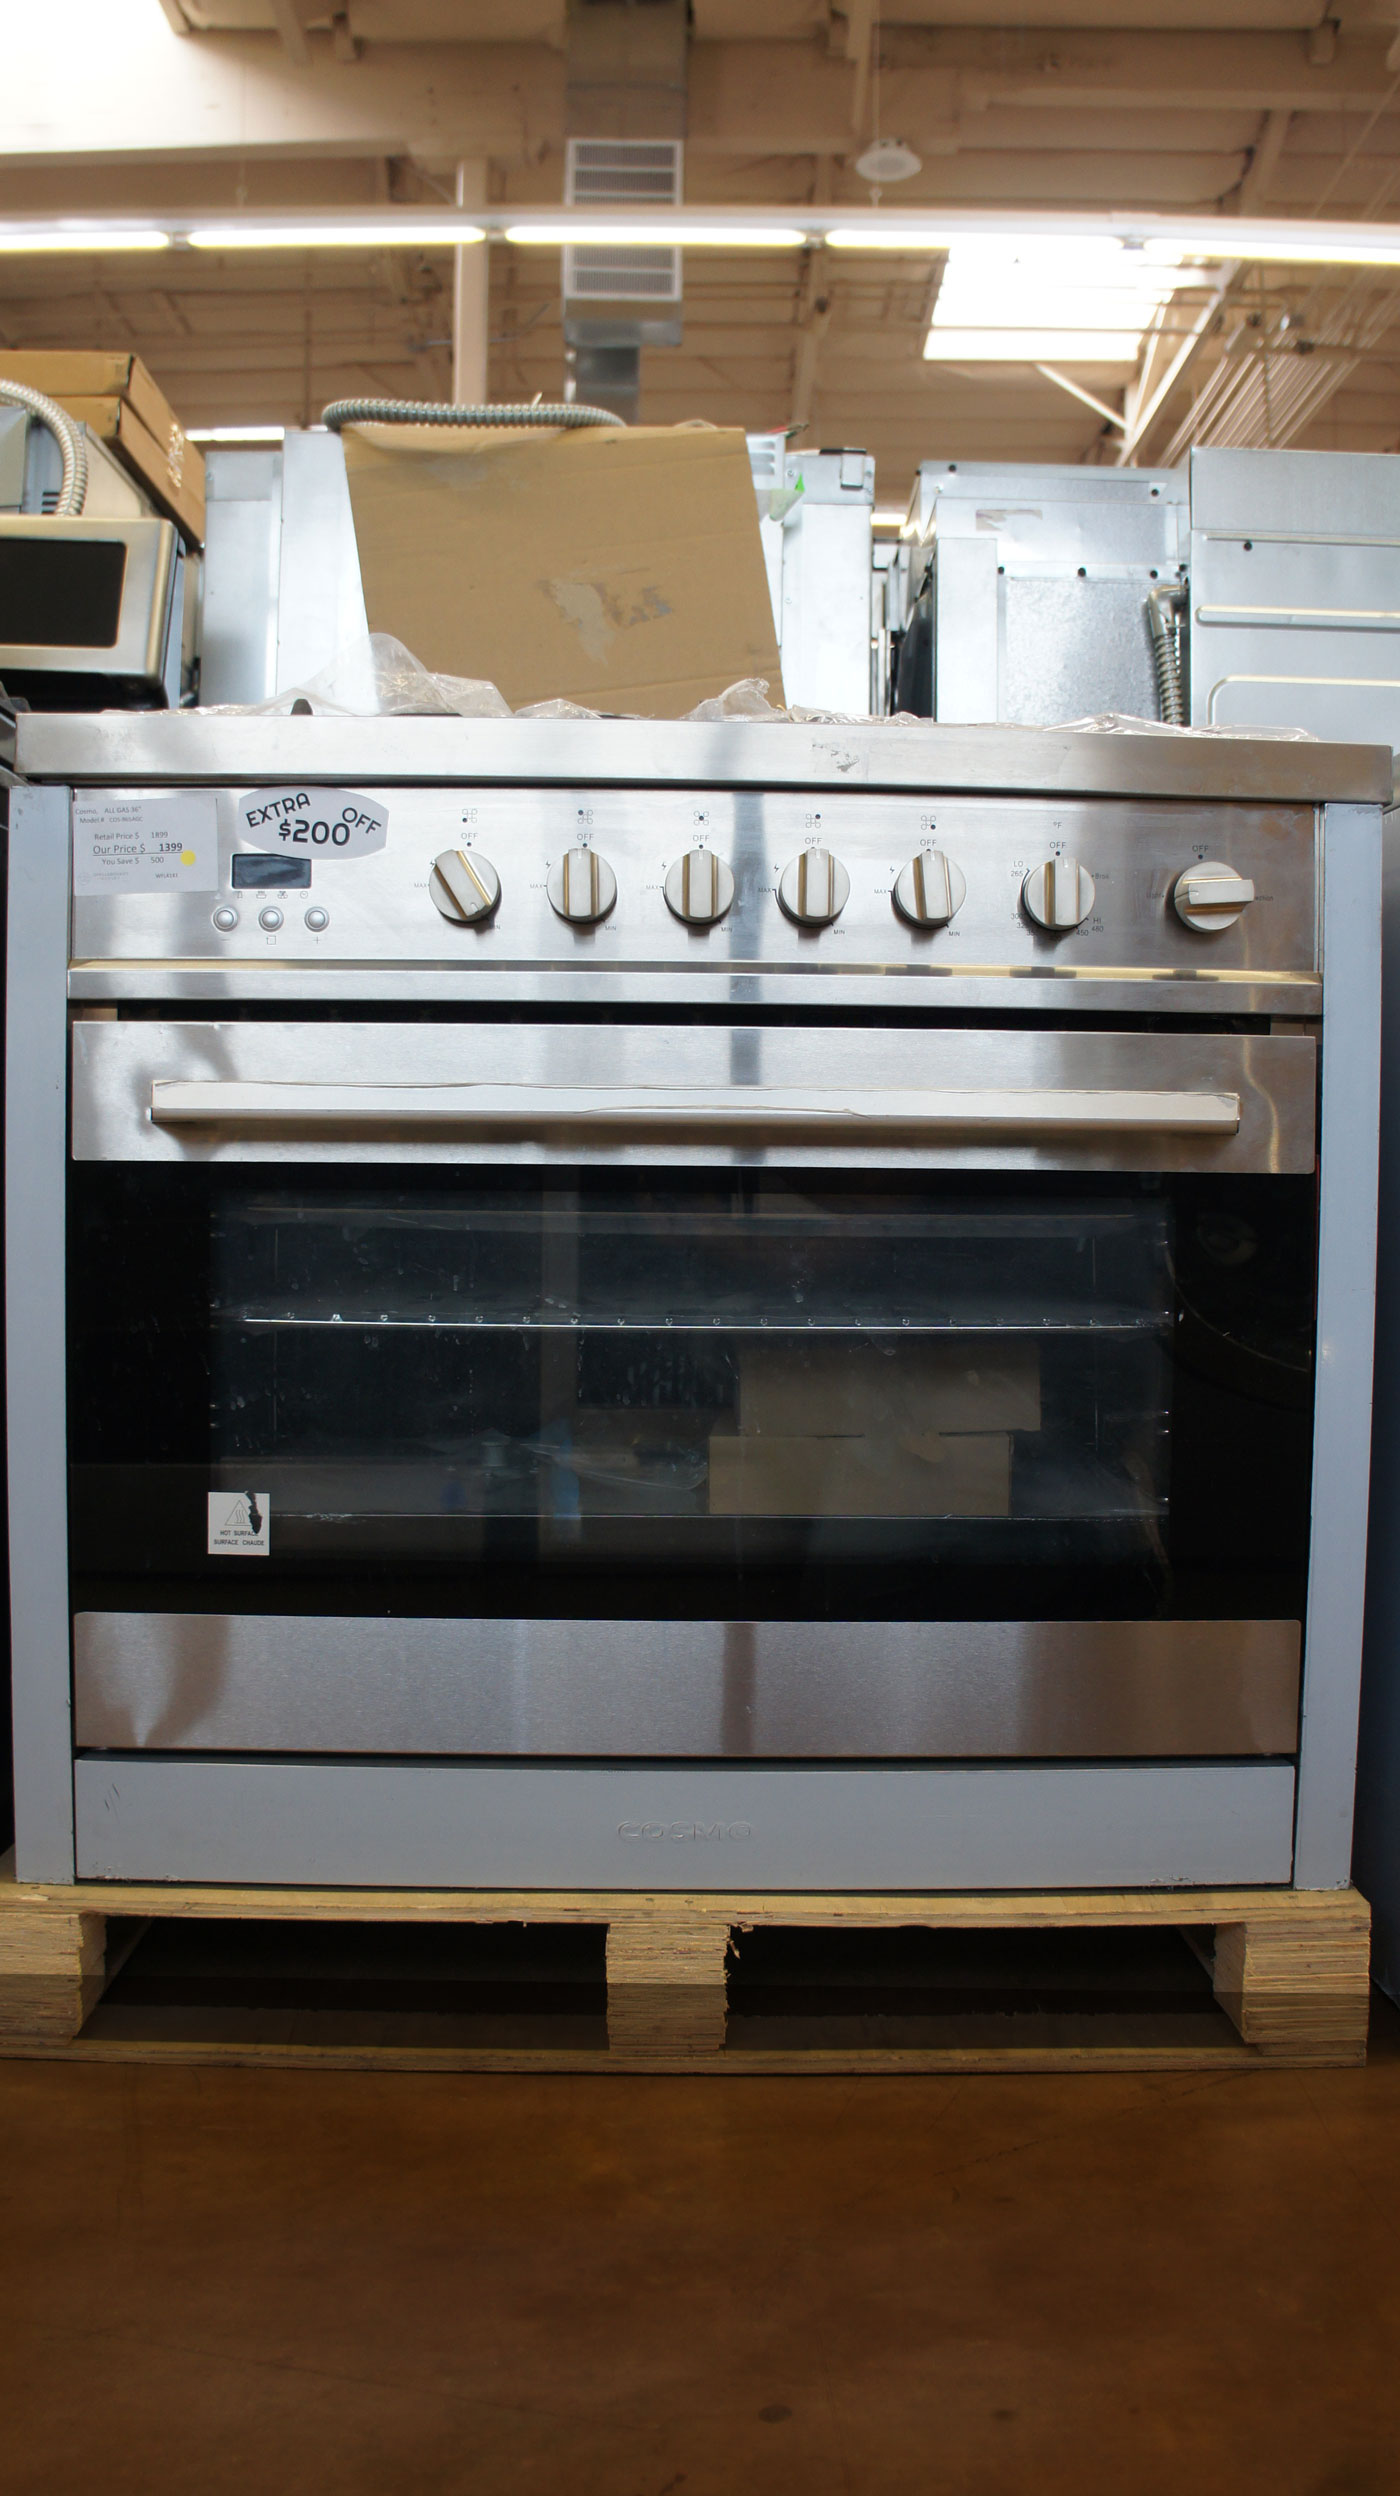 "36"" Cosmo COS965AGC Freestanding Single Oven Gas Range"